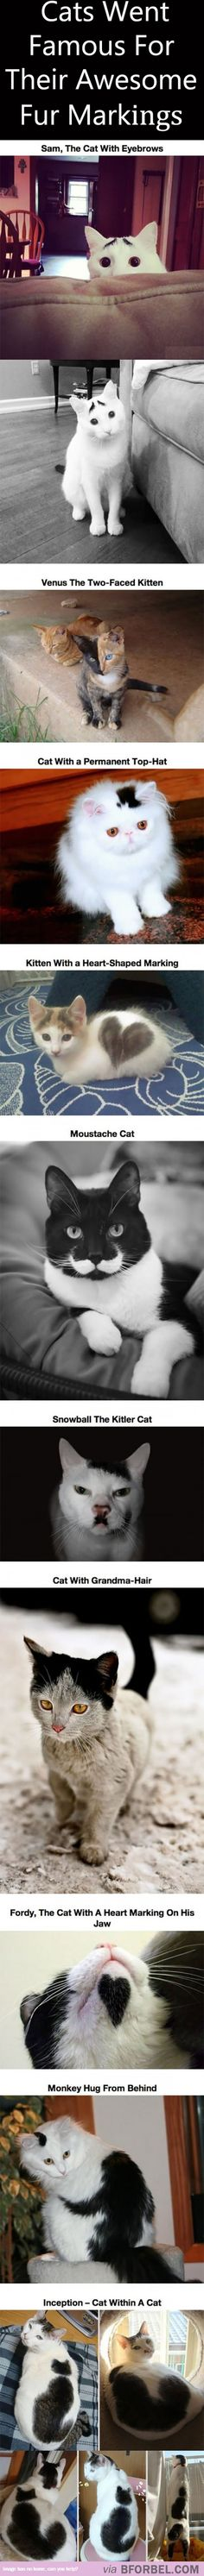 10 Cats That Became Famous For Their Awesome Fur Markings…